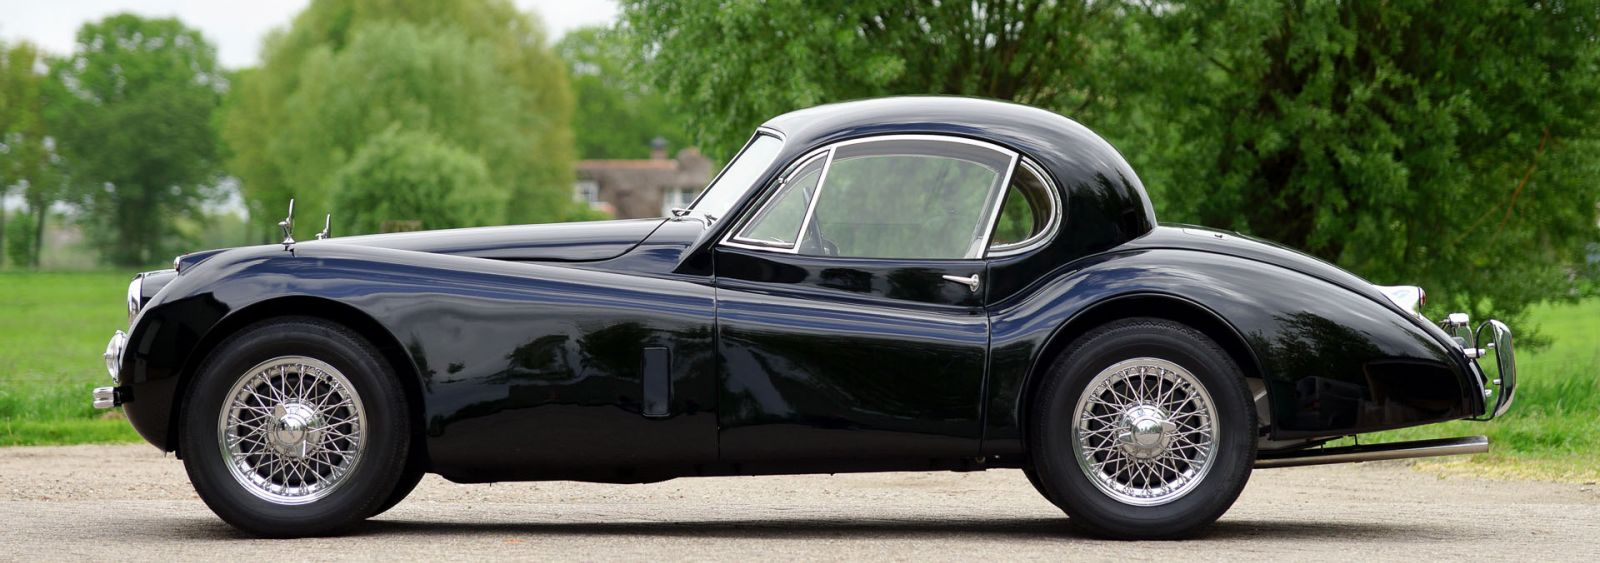 jaguar xk 120 fhc 1954 welcome to classicargarage. Black Bedroom Furniture Sets. Home Design Ideas